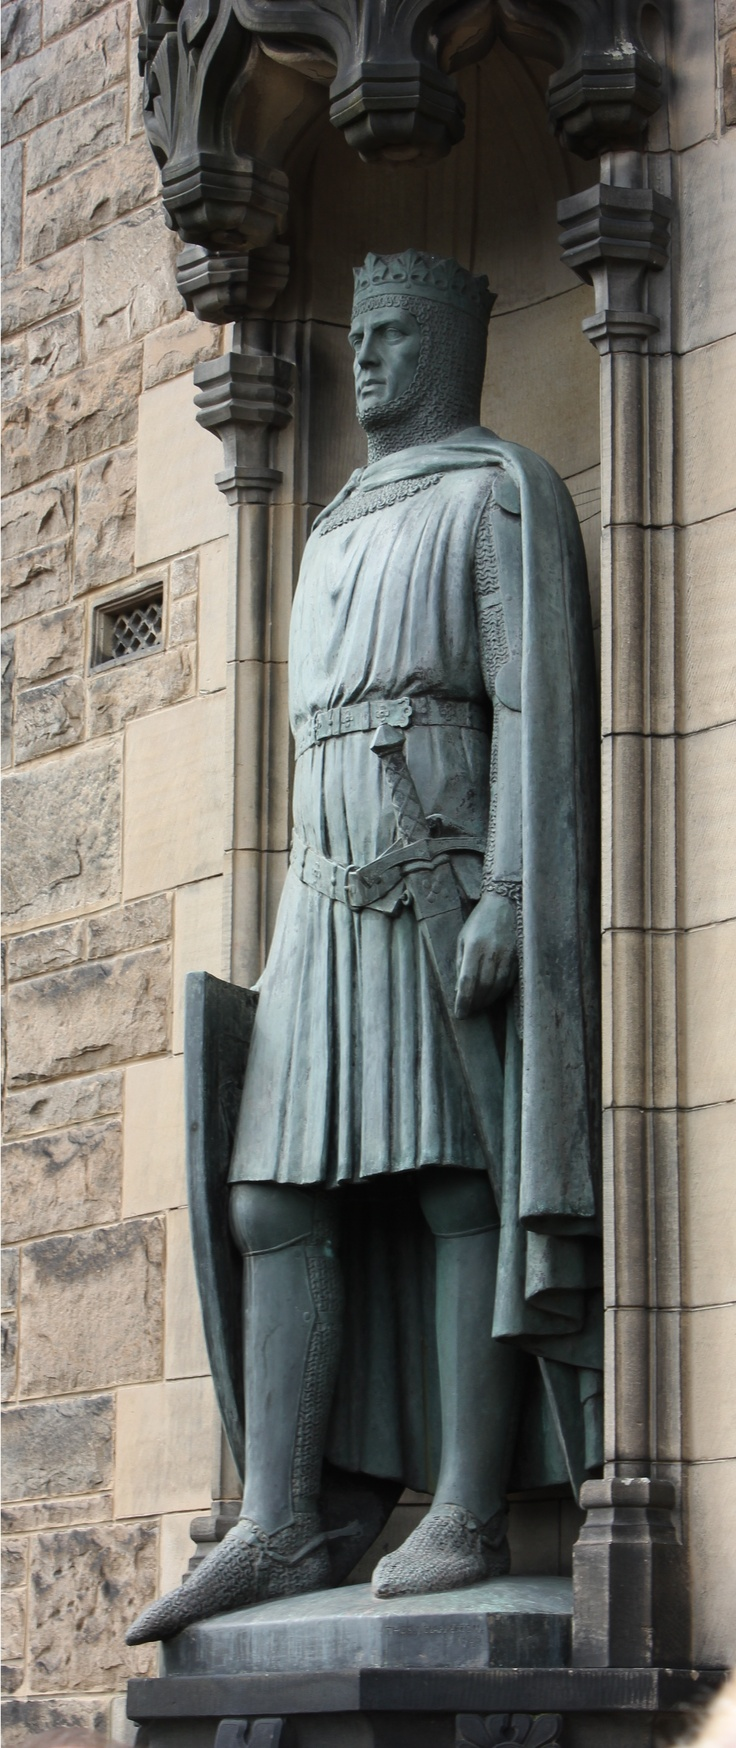 """The statue Robert I, King of Scots, 1306-1329, popularly known as """"Robert the Bruce"""" ~ stands at the Edinburgh Castle entrance in Scotland"""